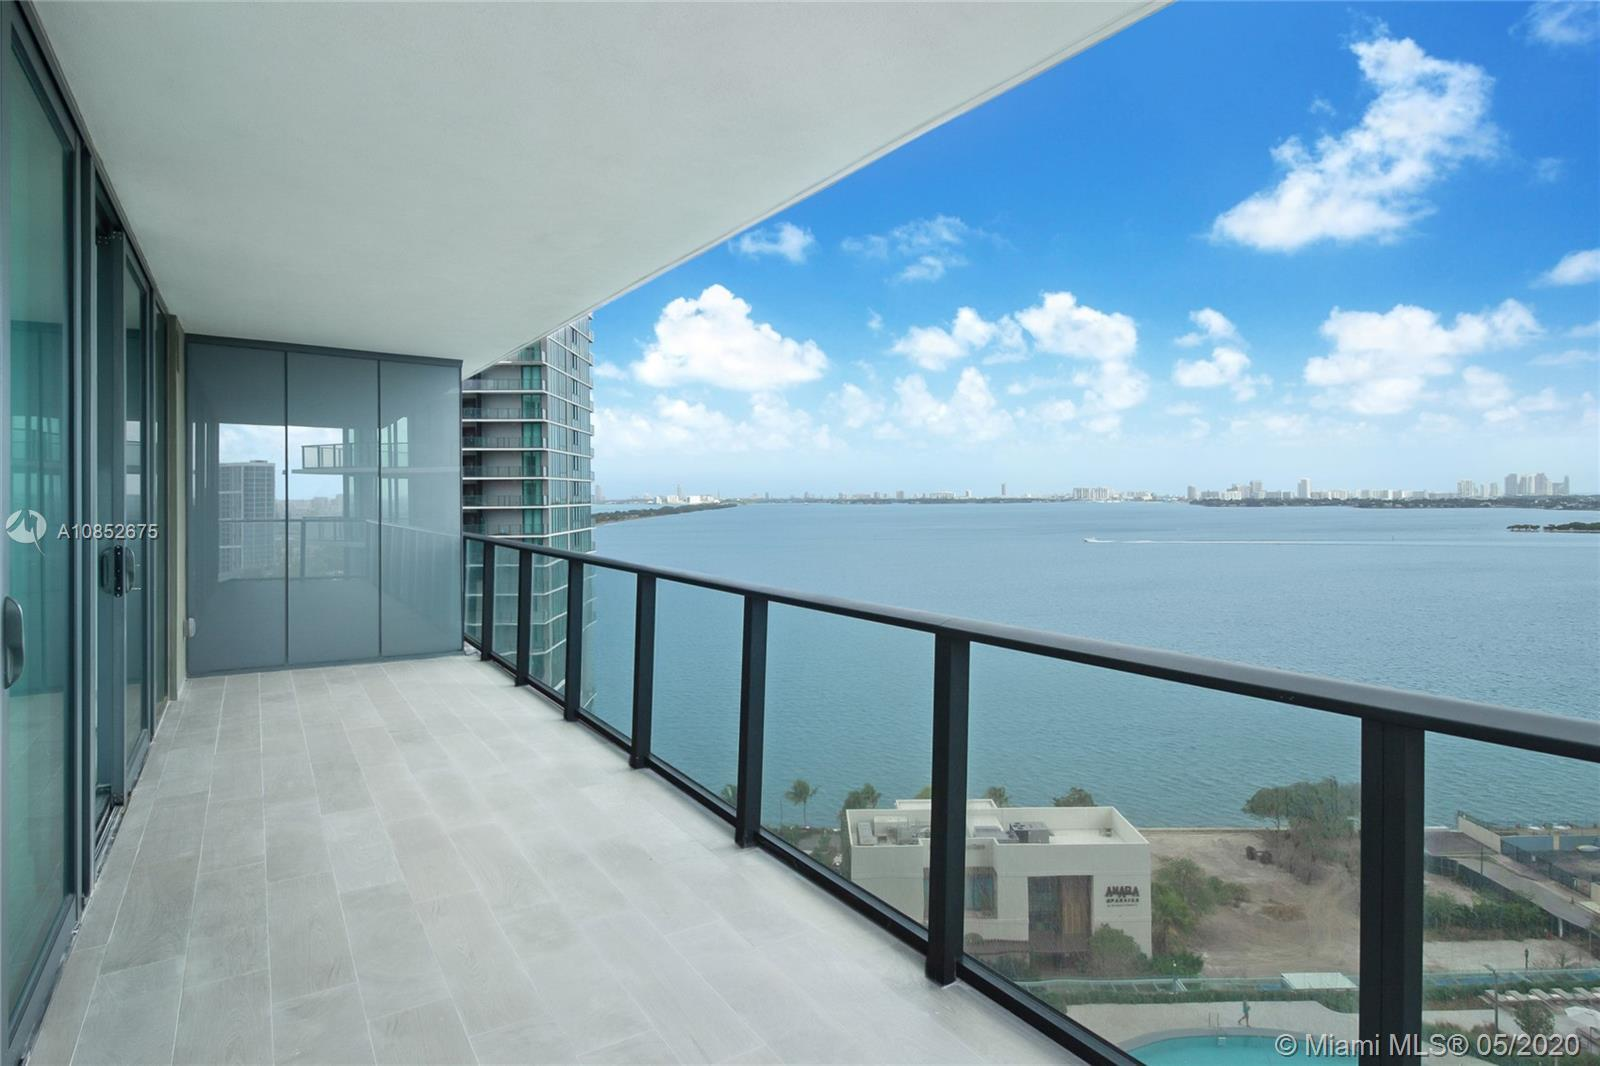 $60,000 worth of flooring installed! A stunning condo with stunning views in a stunning building! Wo